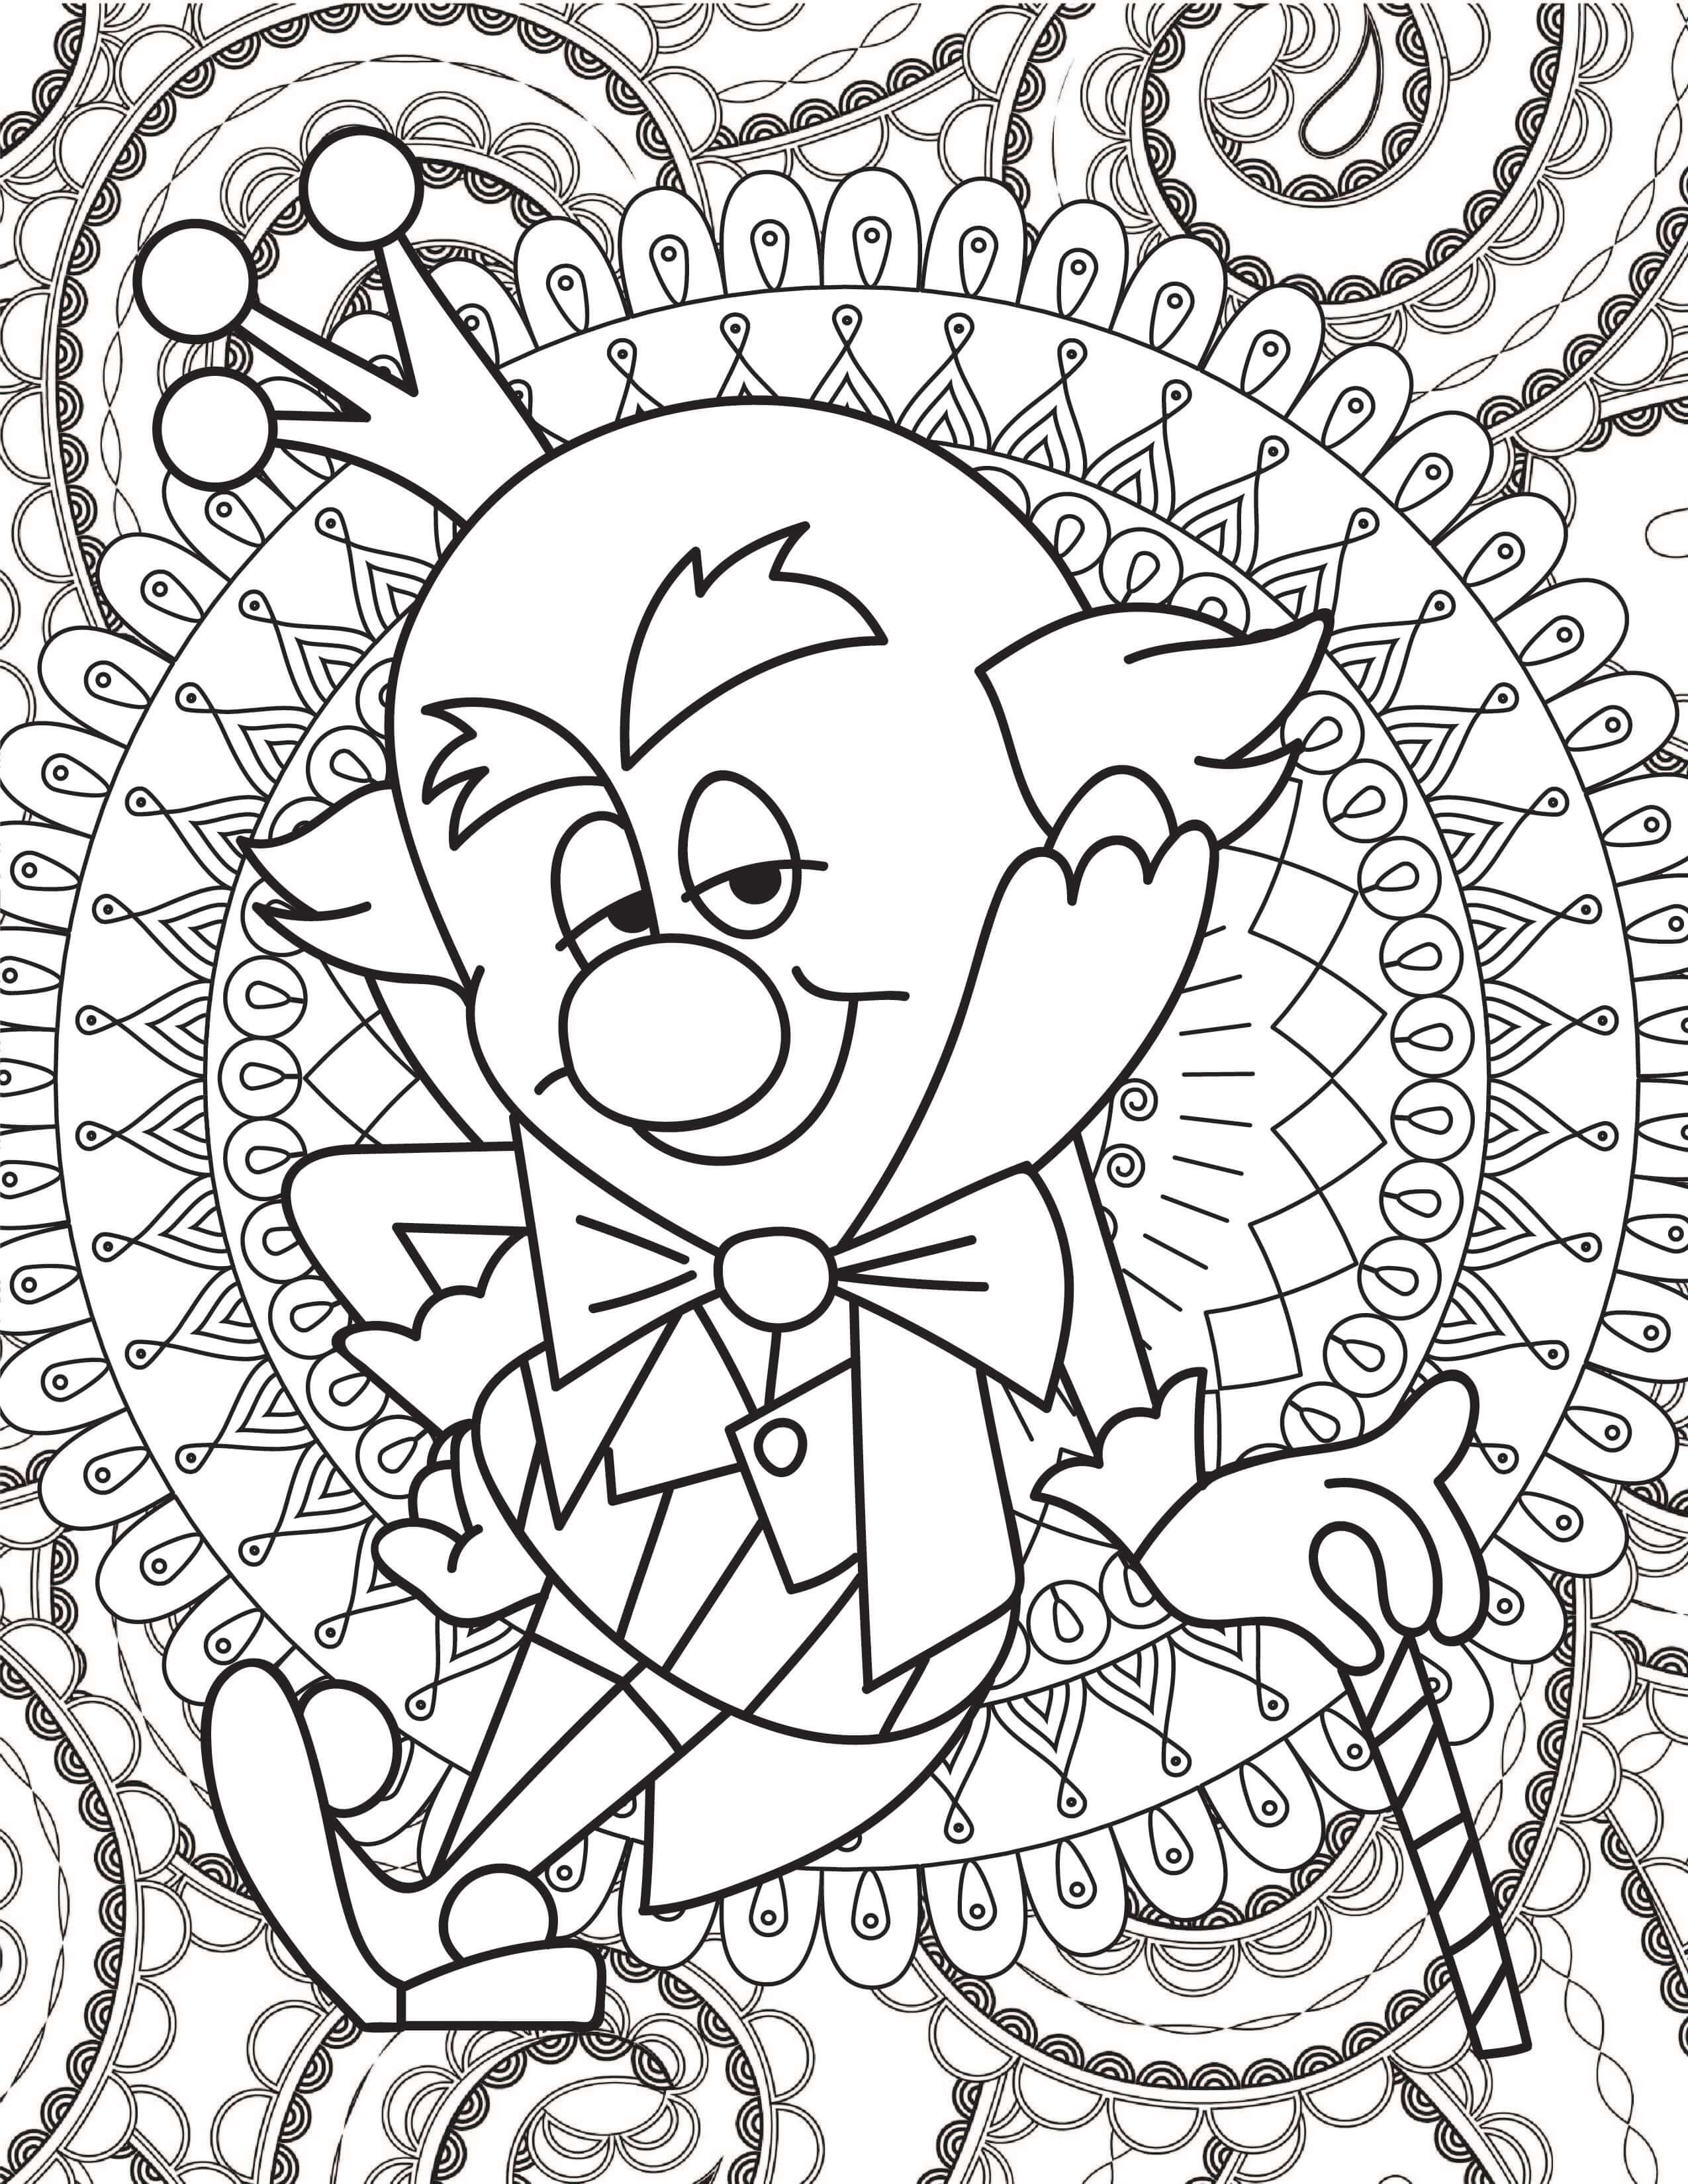 Best ideas about Disney Printable Coloring Pages . Save or Pin Free Disney Pixar Printable Coloring Pages Now.